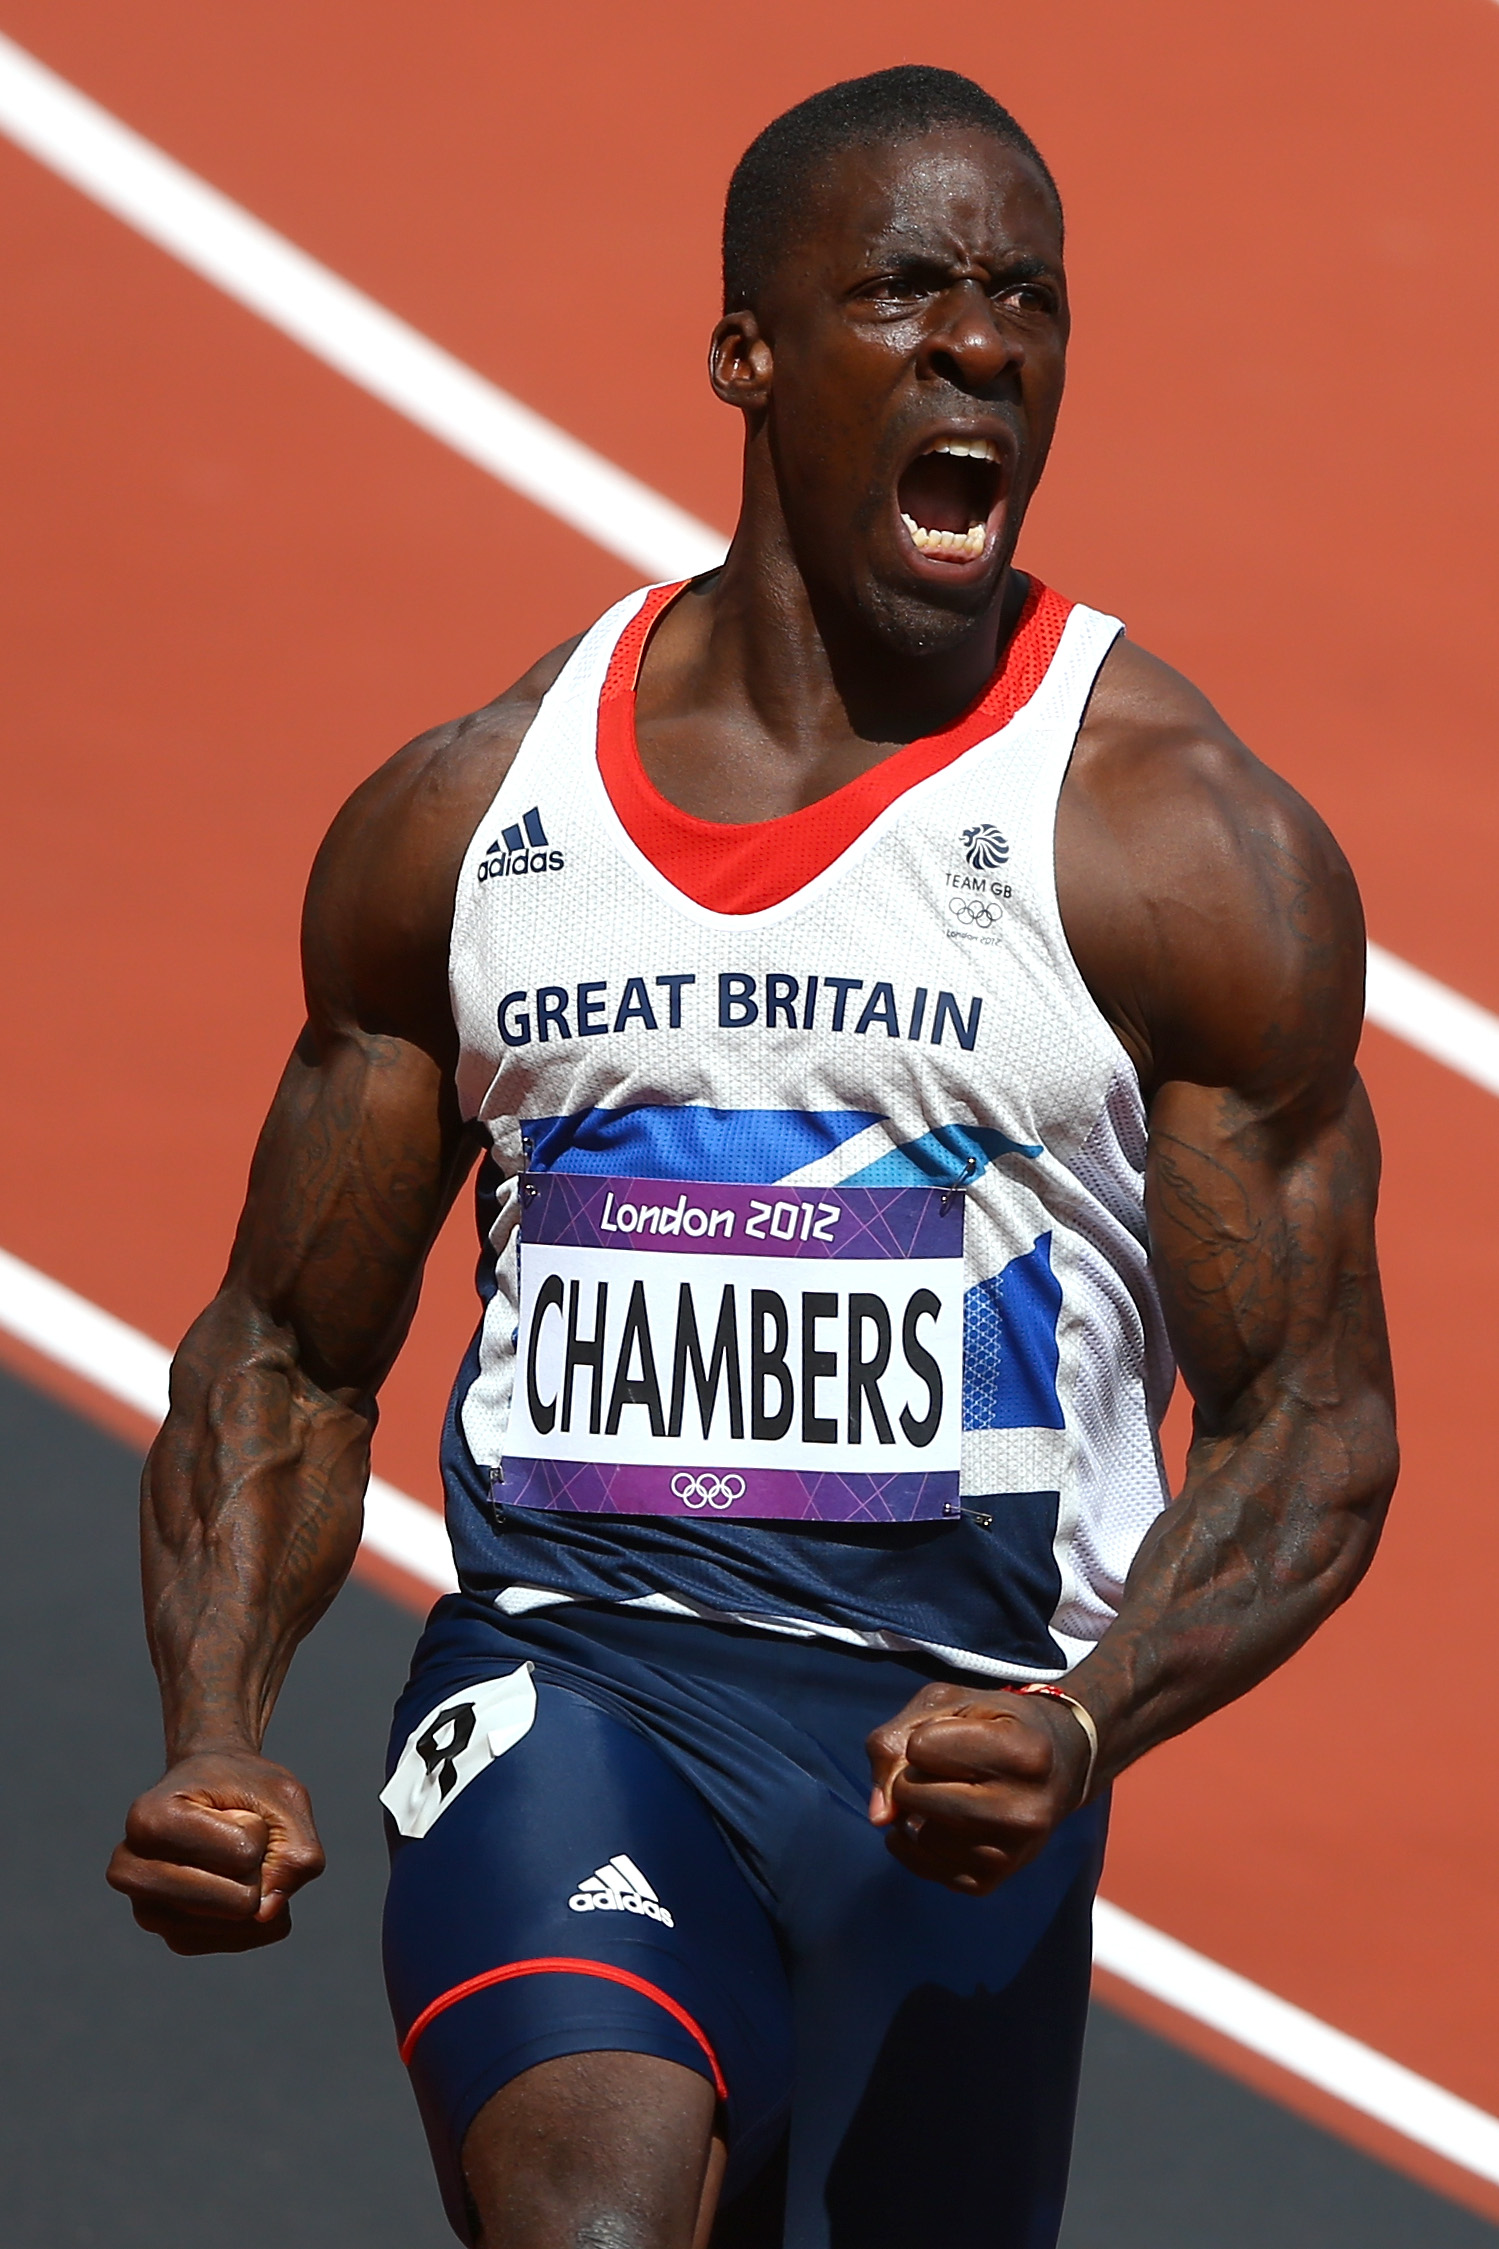 runner dwain chambers of great britain got excited after